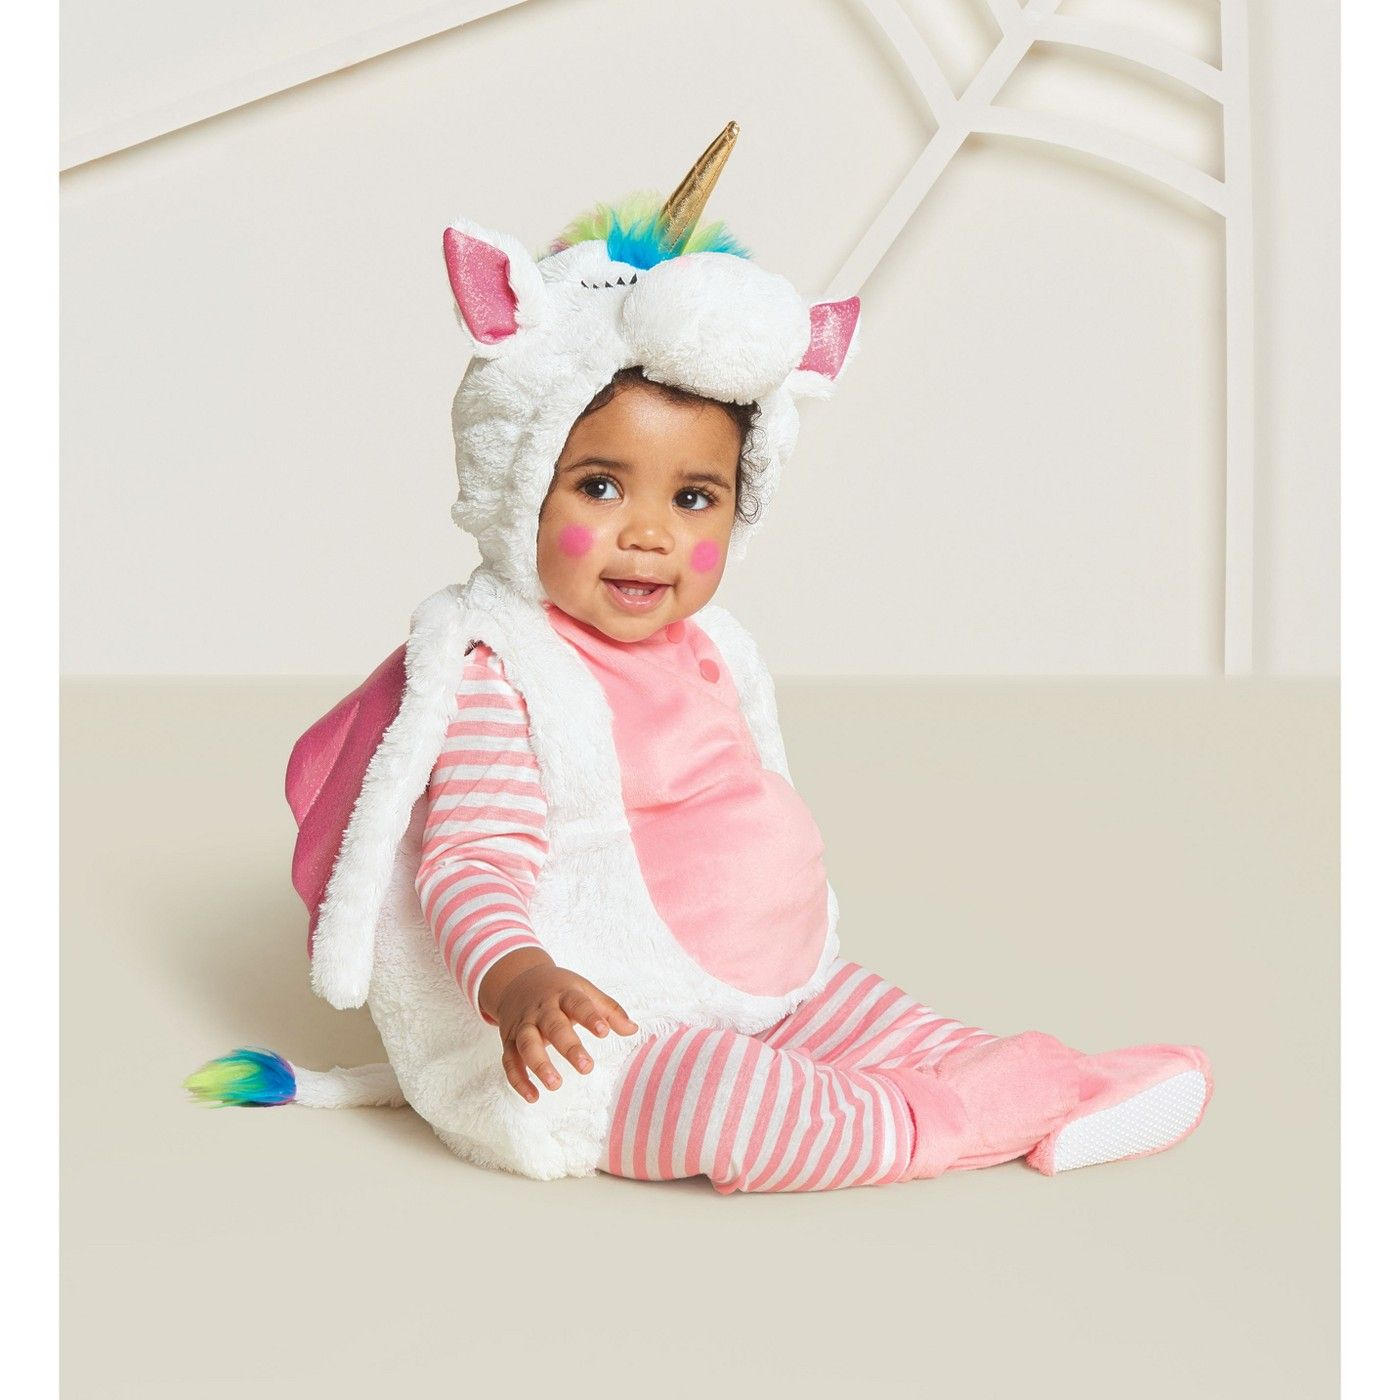 Baby Halloween Costumes At Target.All The Best Kids Baby Halloween Costumes From Our Fave Places To Shop Baby Unicorn Costume Unicorn Halloween Costume Baby Halloween Costumes